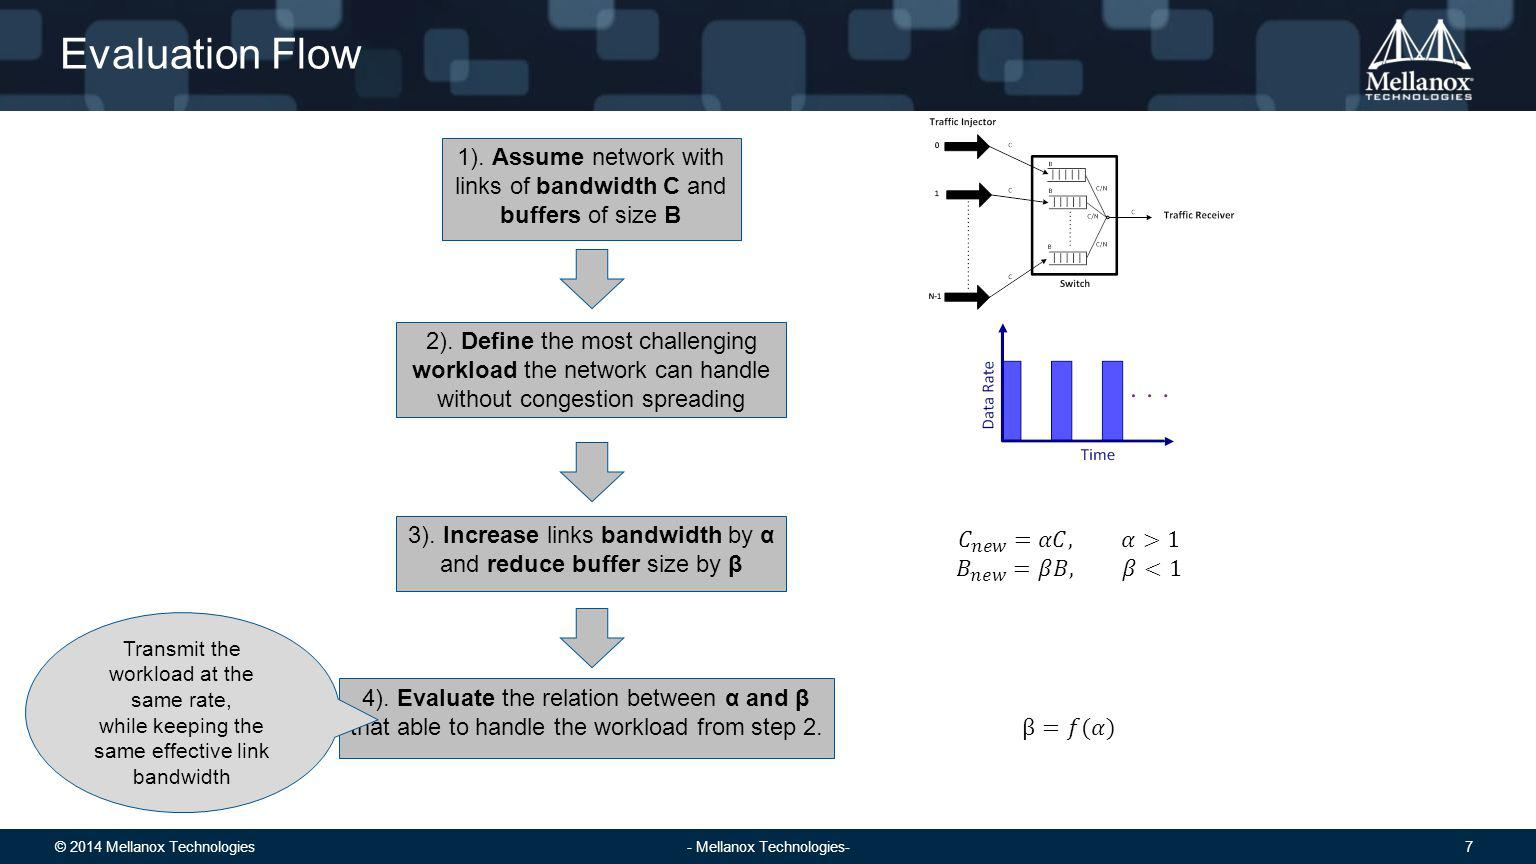 © 2014 Mellanox Technologies 8 - Mellanox Technologies- Network Model The most challenging workload: